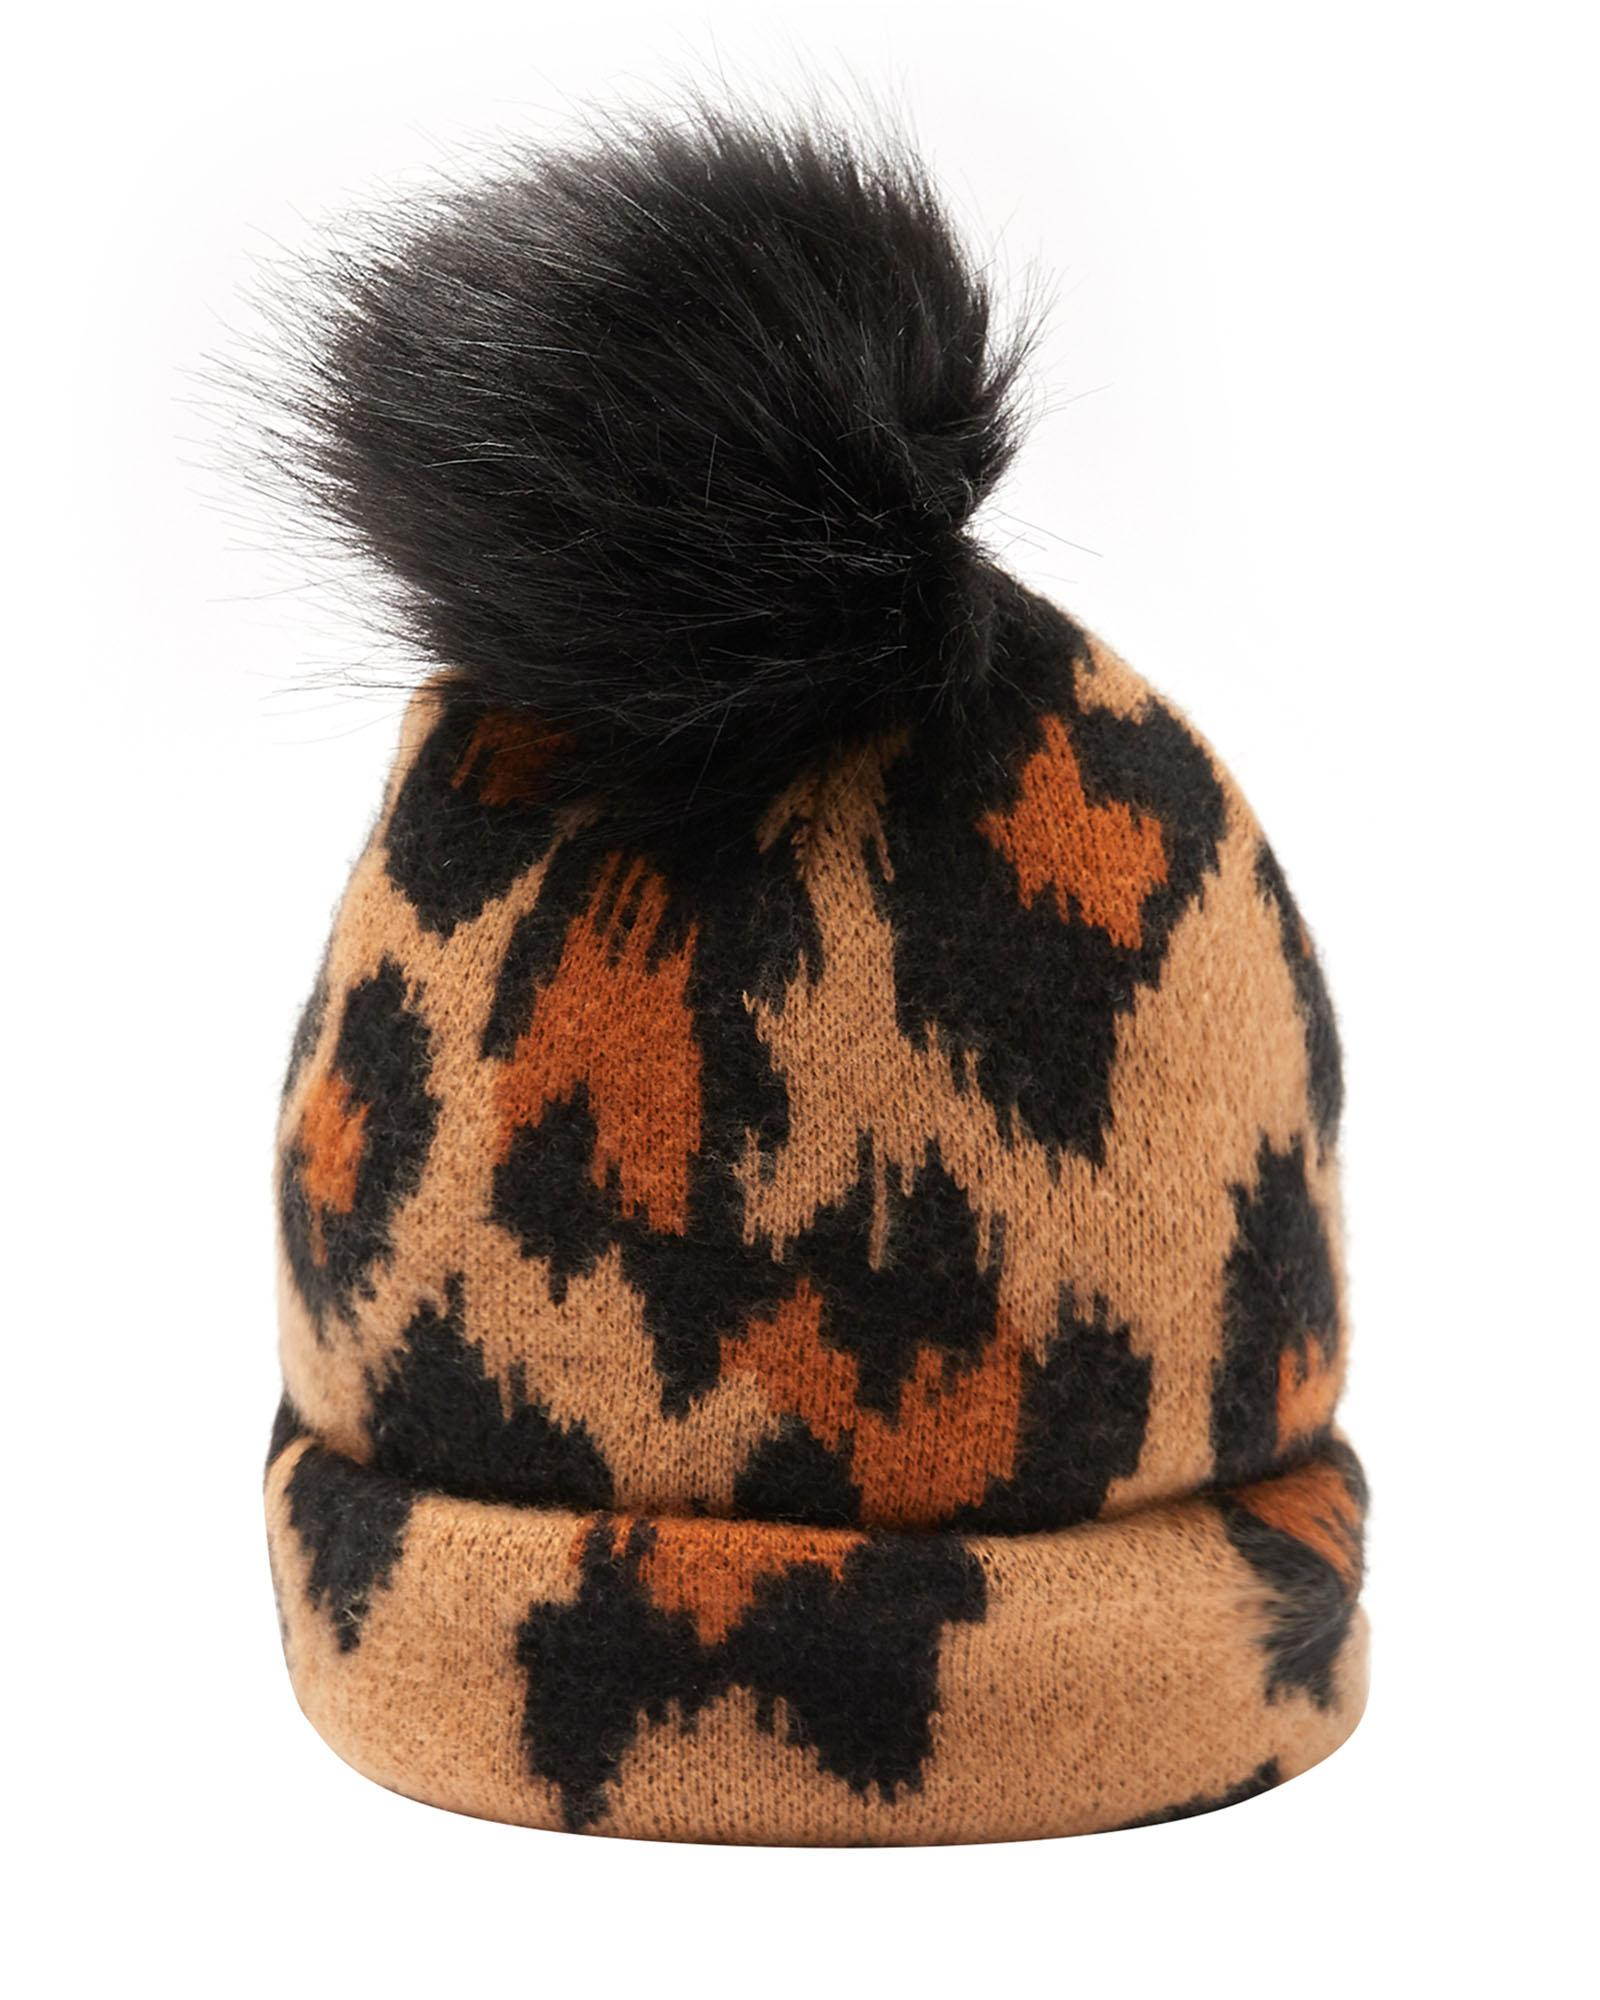 Animal Print Knitted Hat £20 Oliver Bonas